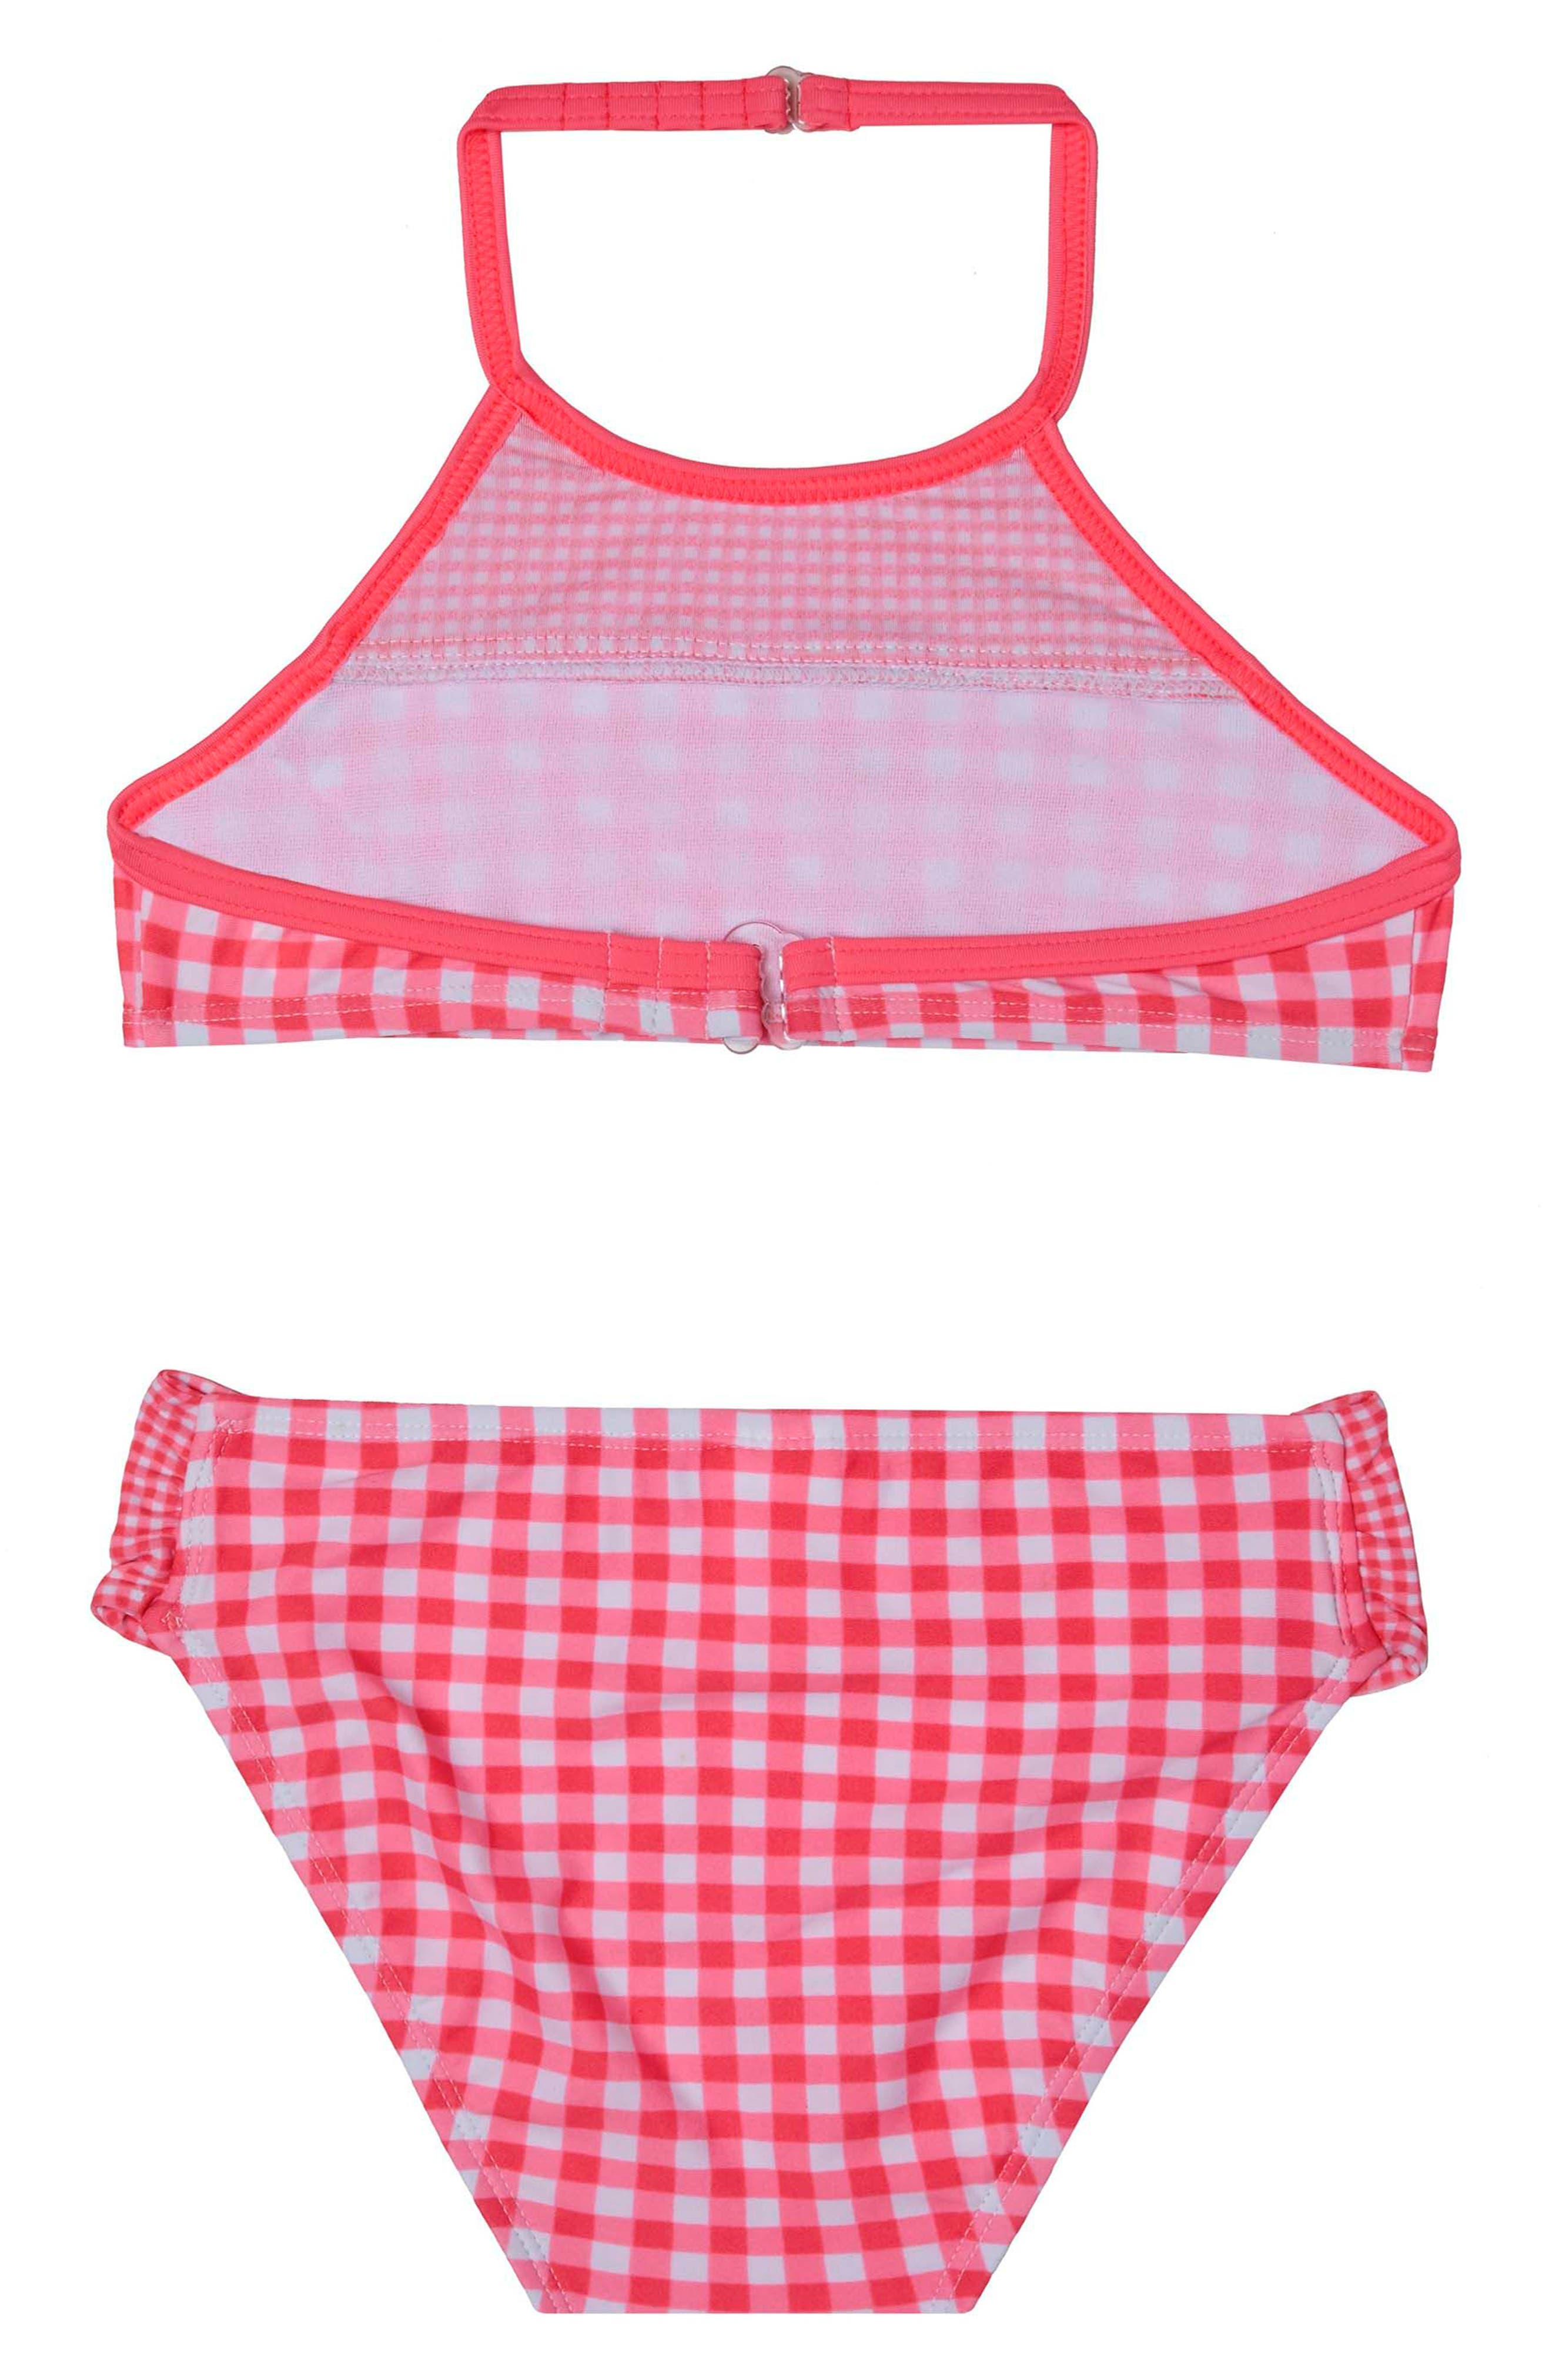 Picnic Gingham Two-Piece Swimsuit,                             Alternate thumbnail 2, color,                             Red